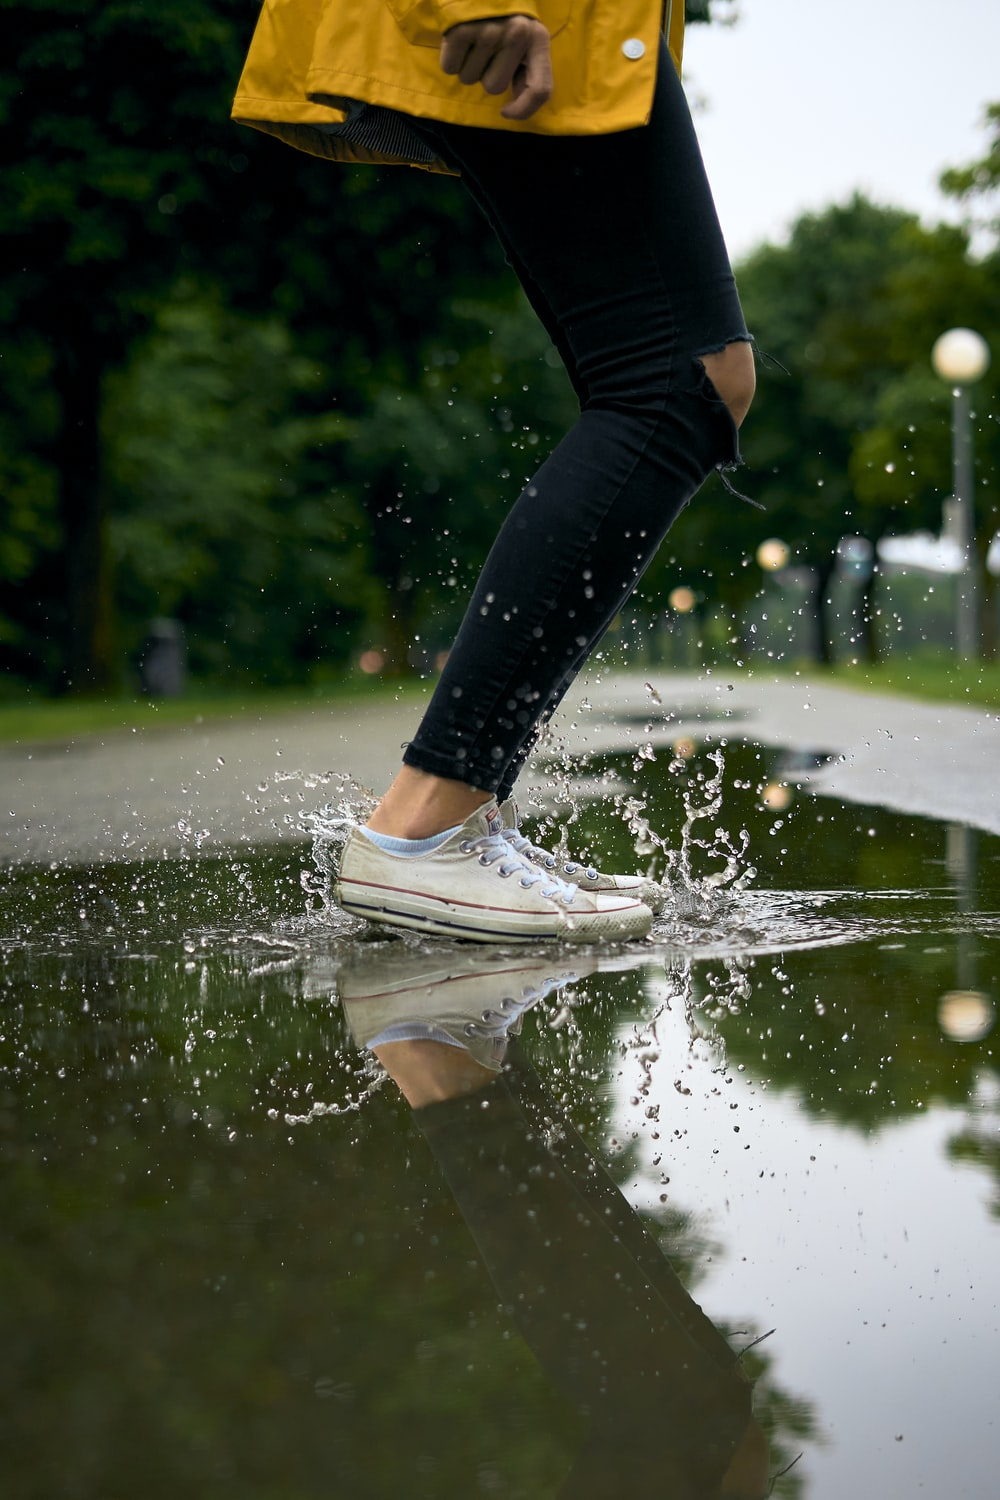 person in black leggings and white sneakers jumping on water